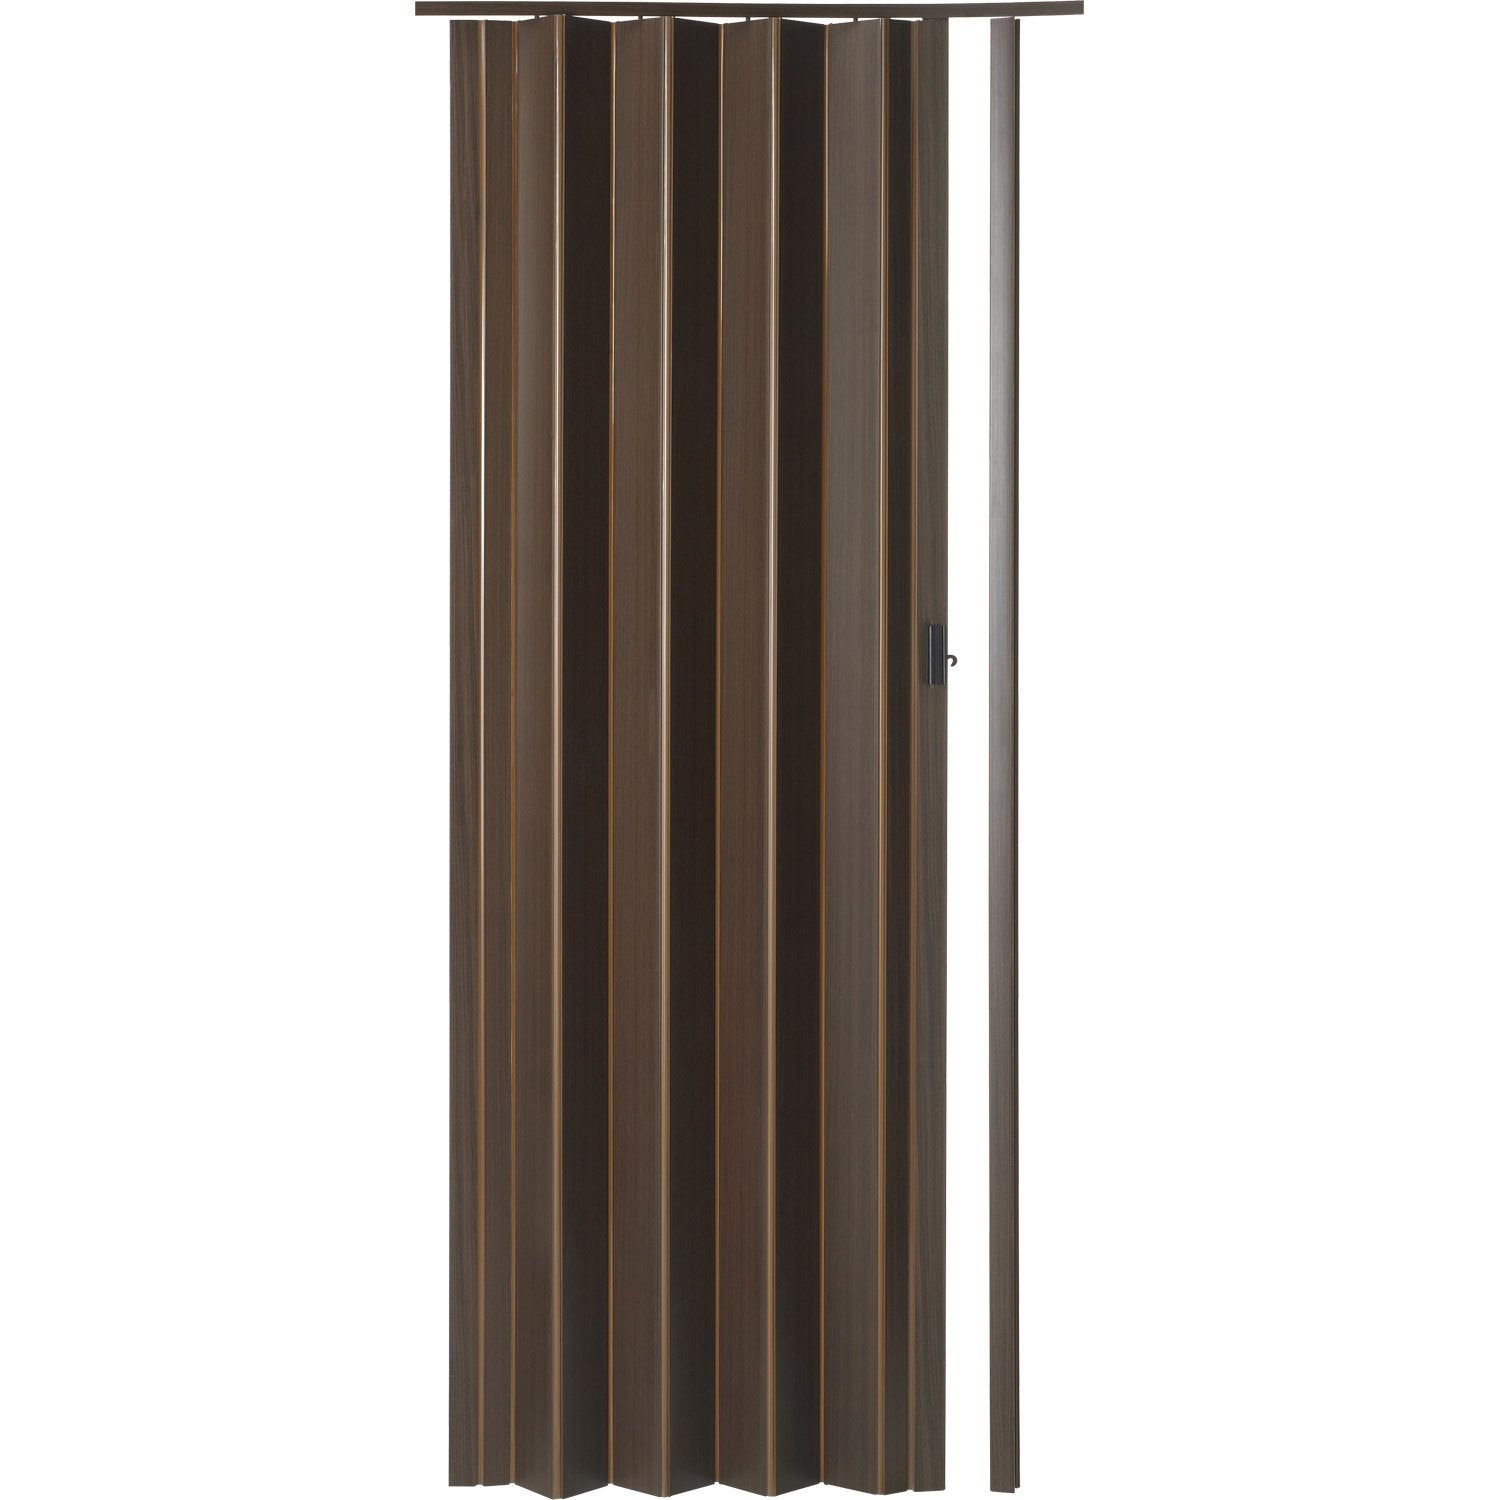 Porte extensible rio weng 205 x 85 cm pais d 39 une for Porte accordeon pour douche